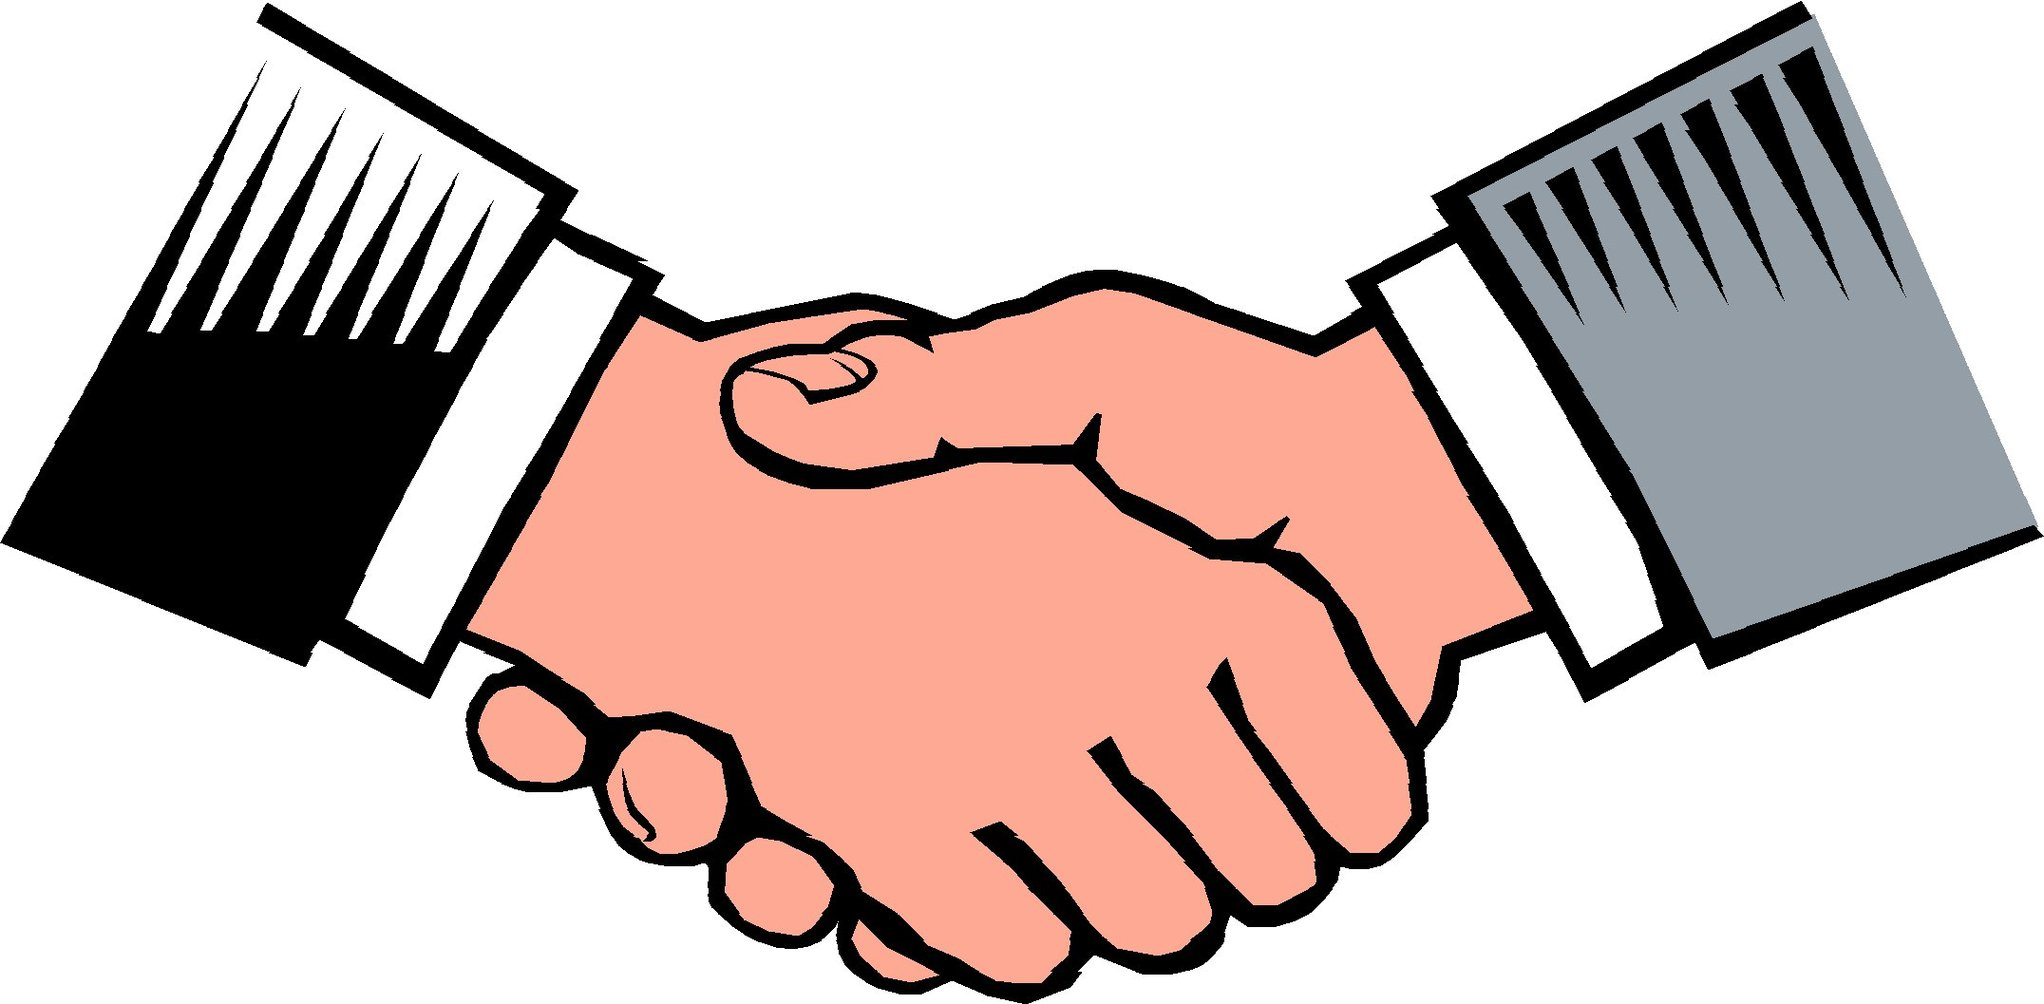 Handshake clipart great compromise. Free shaking hands cliparts